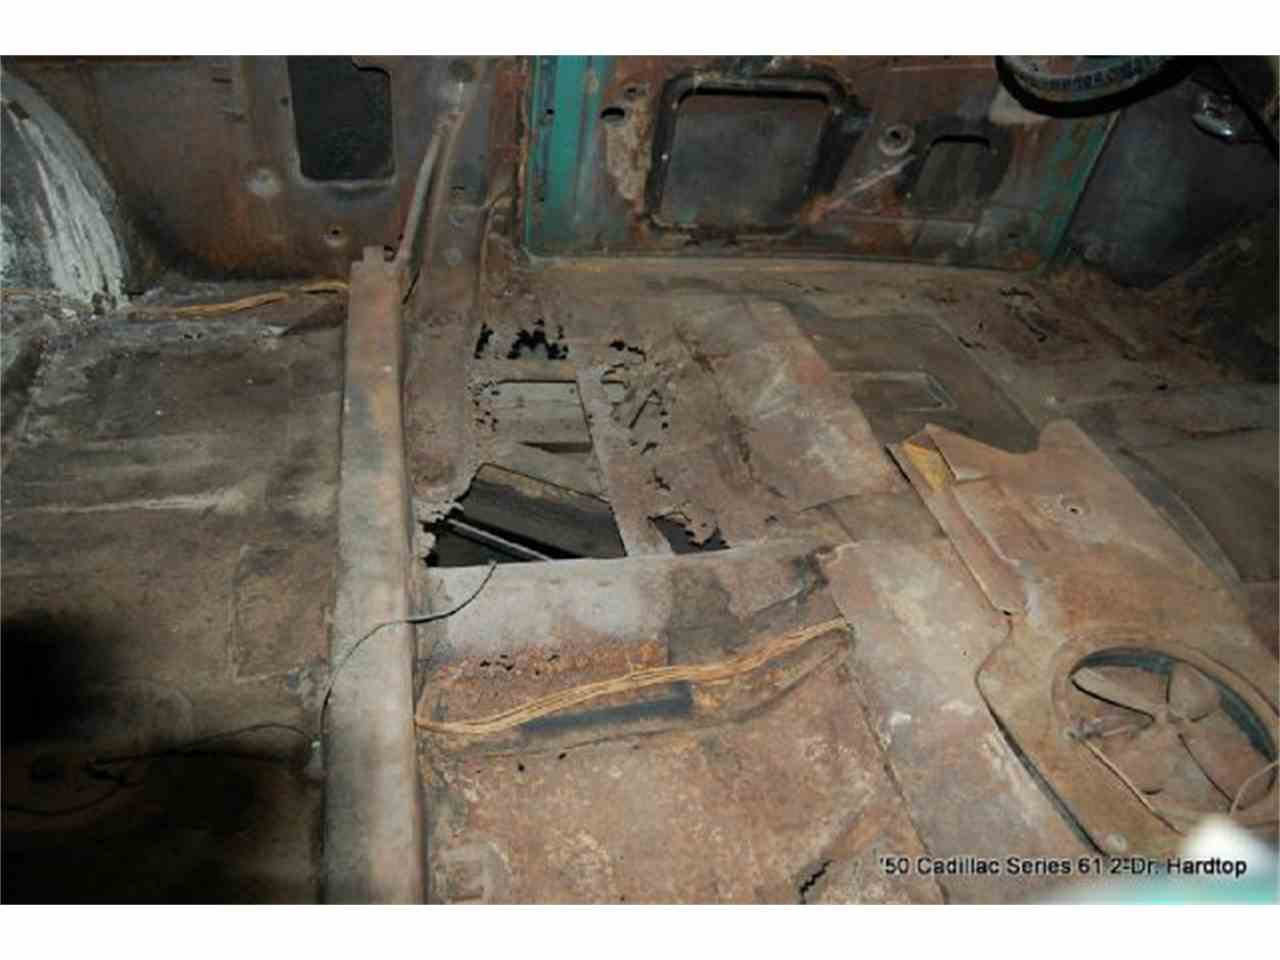 Large Picture of 1950 Cadillac Series 61 Hardtop Project - $5,500.00 - DDK3